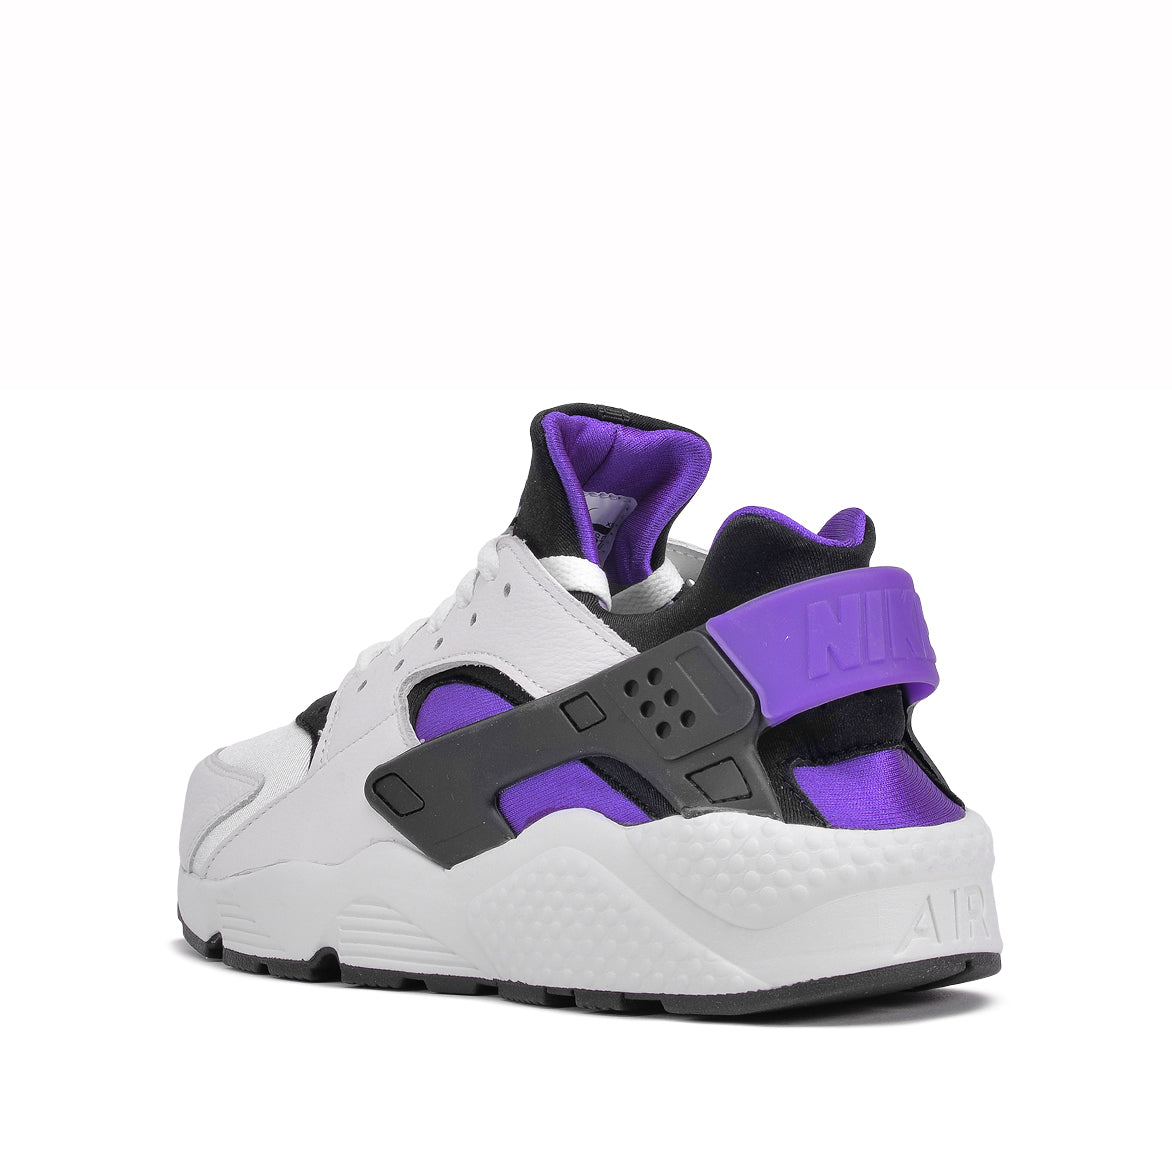 info for 212a2 ca111 norway nike air huarache 91 qs mens shoe 472d2 263fc  authentic nike air  huarache purple punch 0d615 02548